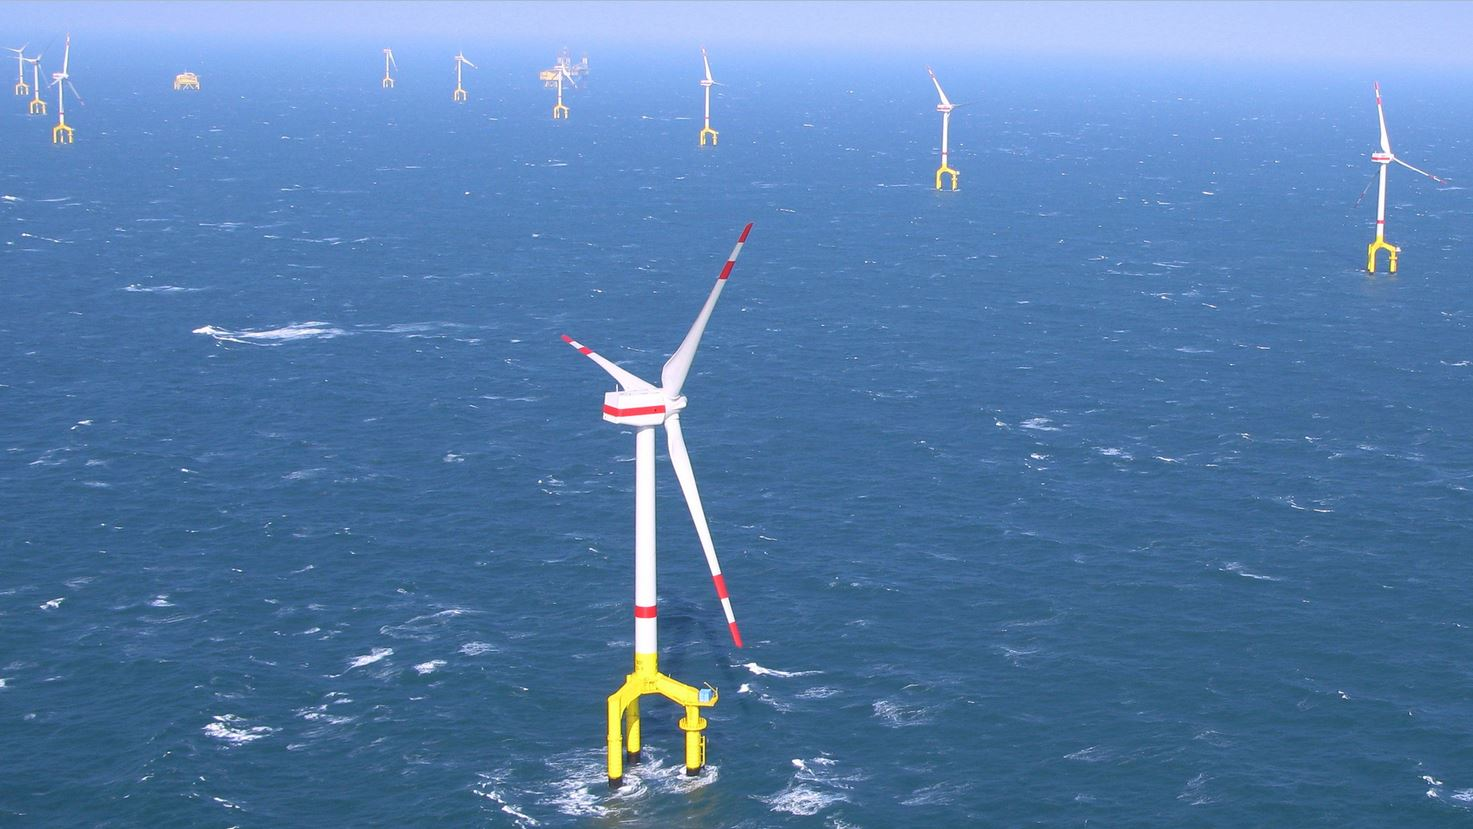 Offshore Wind Power Even Germany Cant Get It Right Watts Up With According To Breitbart Germanys Flagship Bard 1 Farm Has Turned Into A Bottomless Money Pit Stakeholders Frantically Lawyering